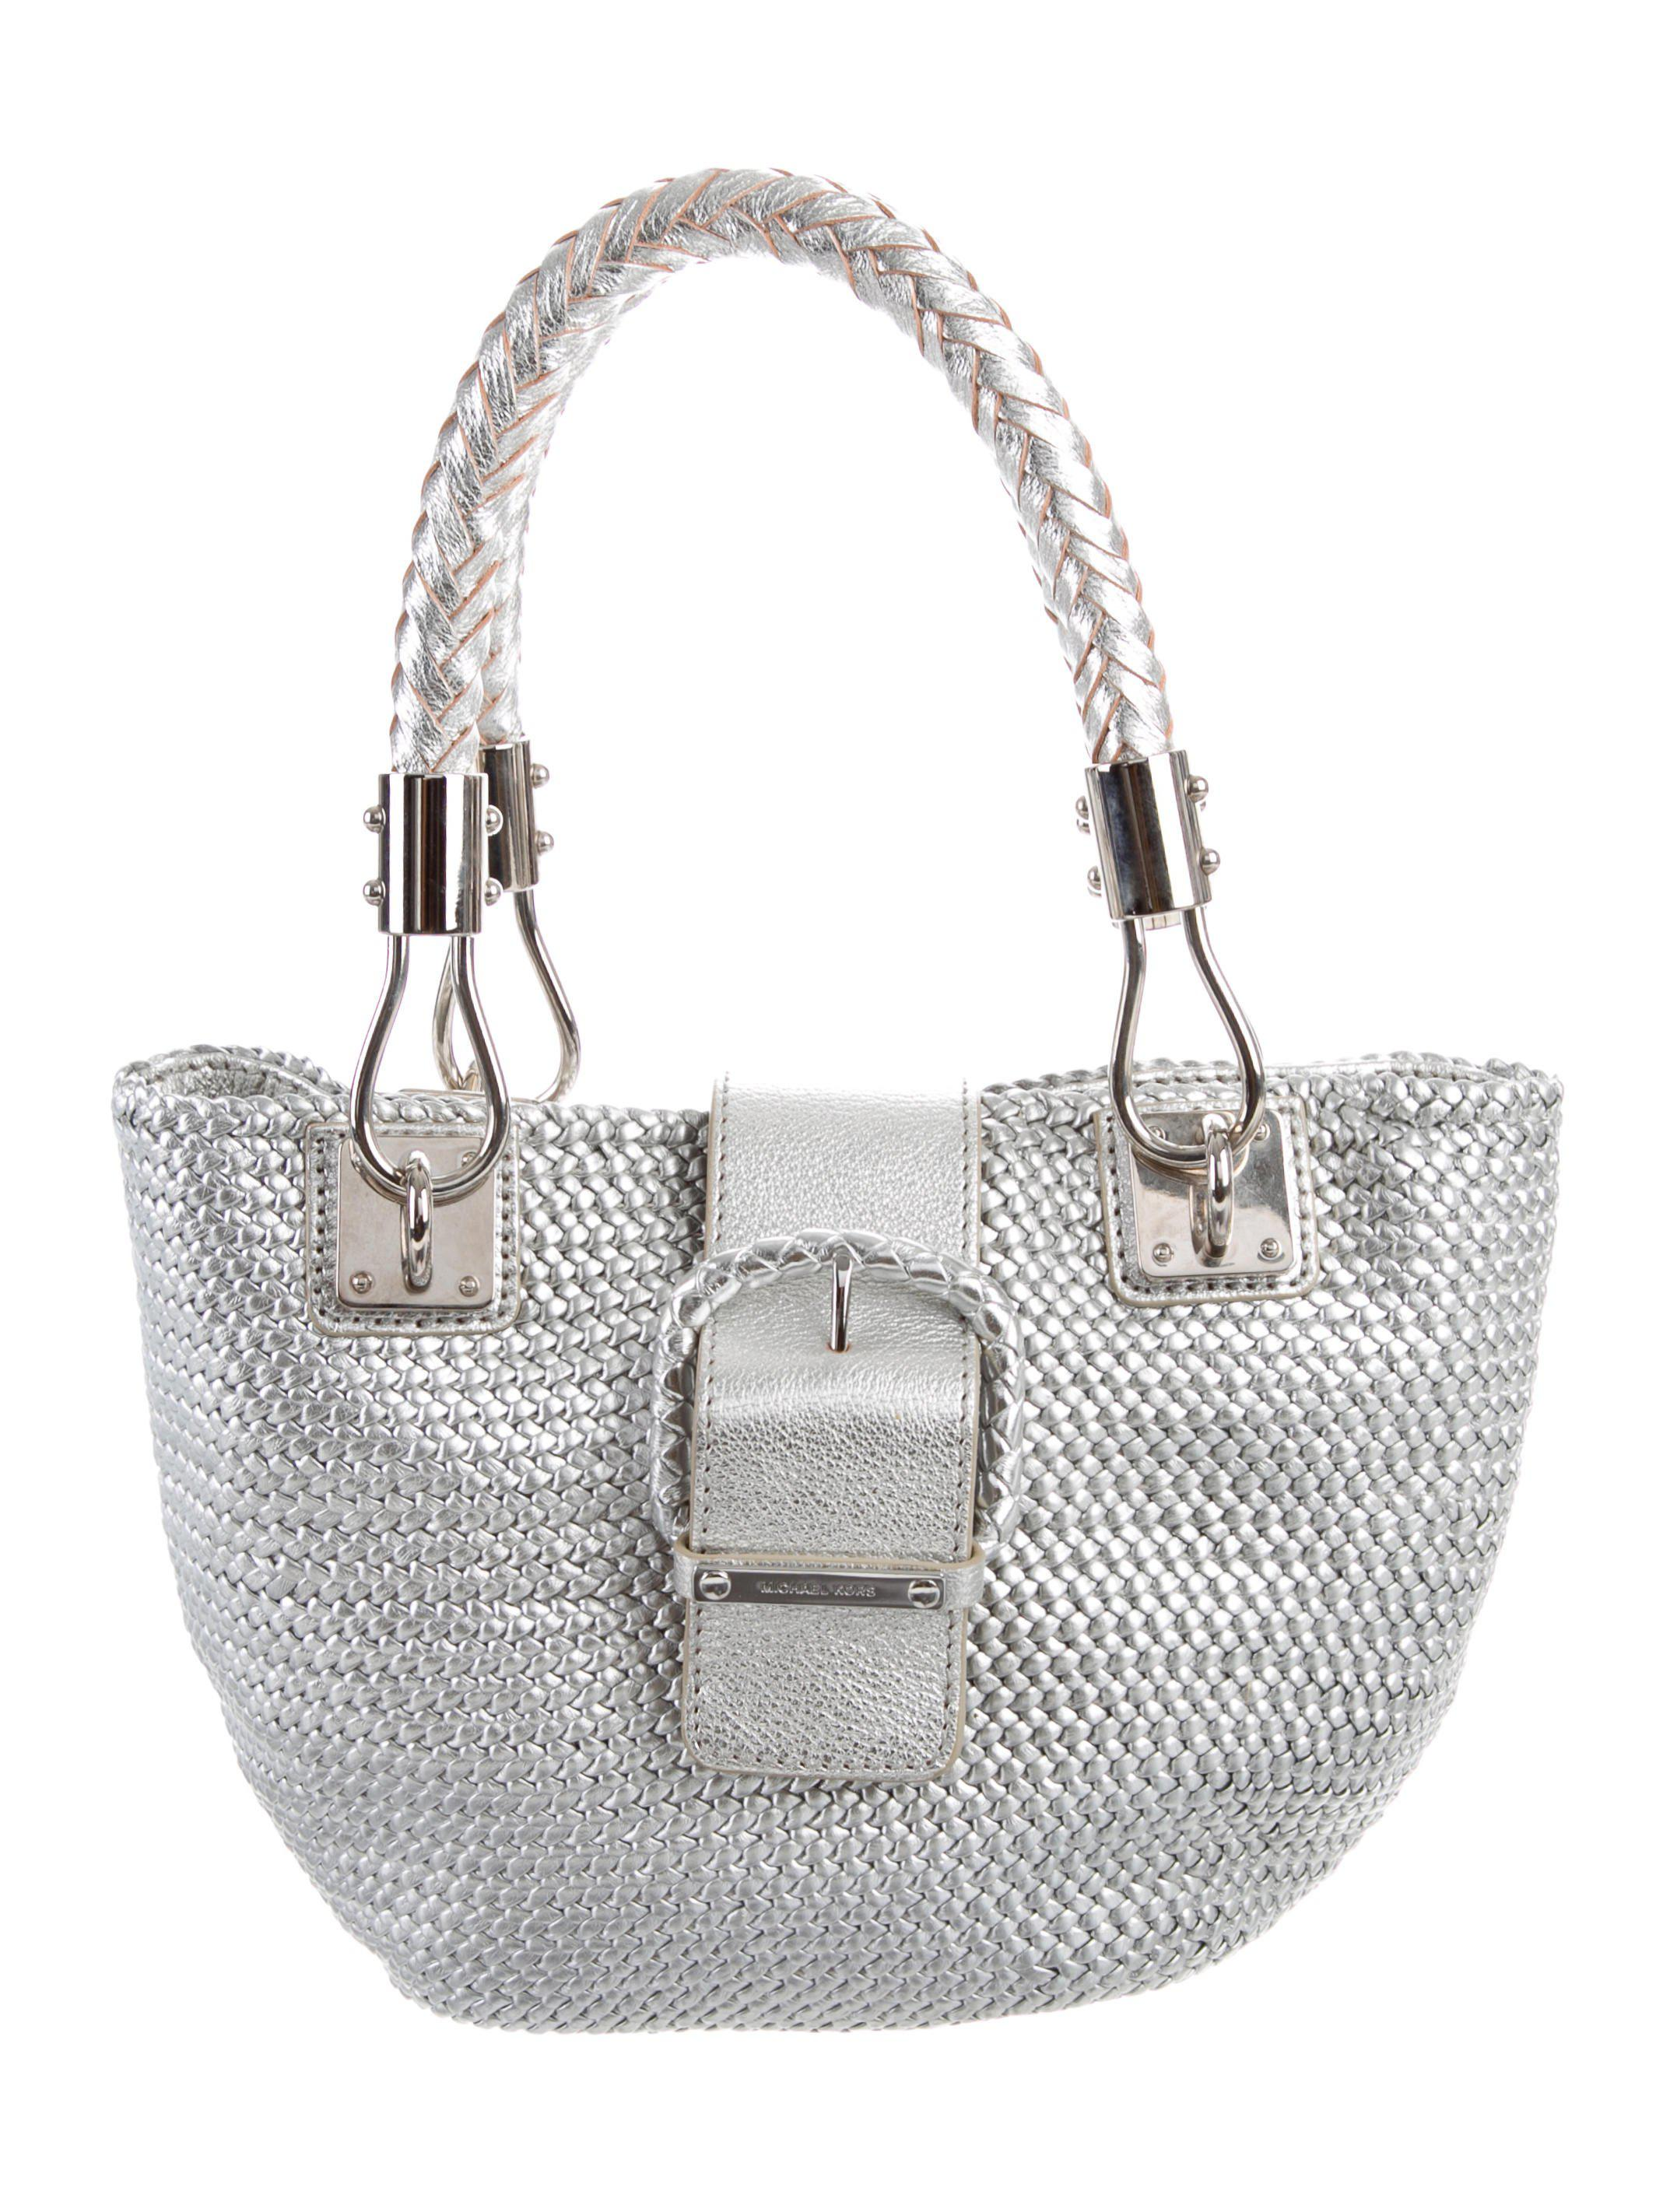 b1efcebfc4c5 Lyst - Michael Kors Leather Tote in Metallic